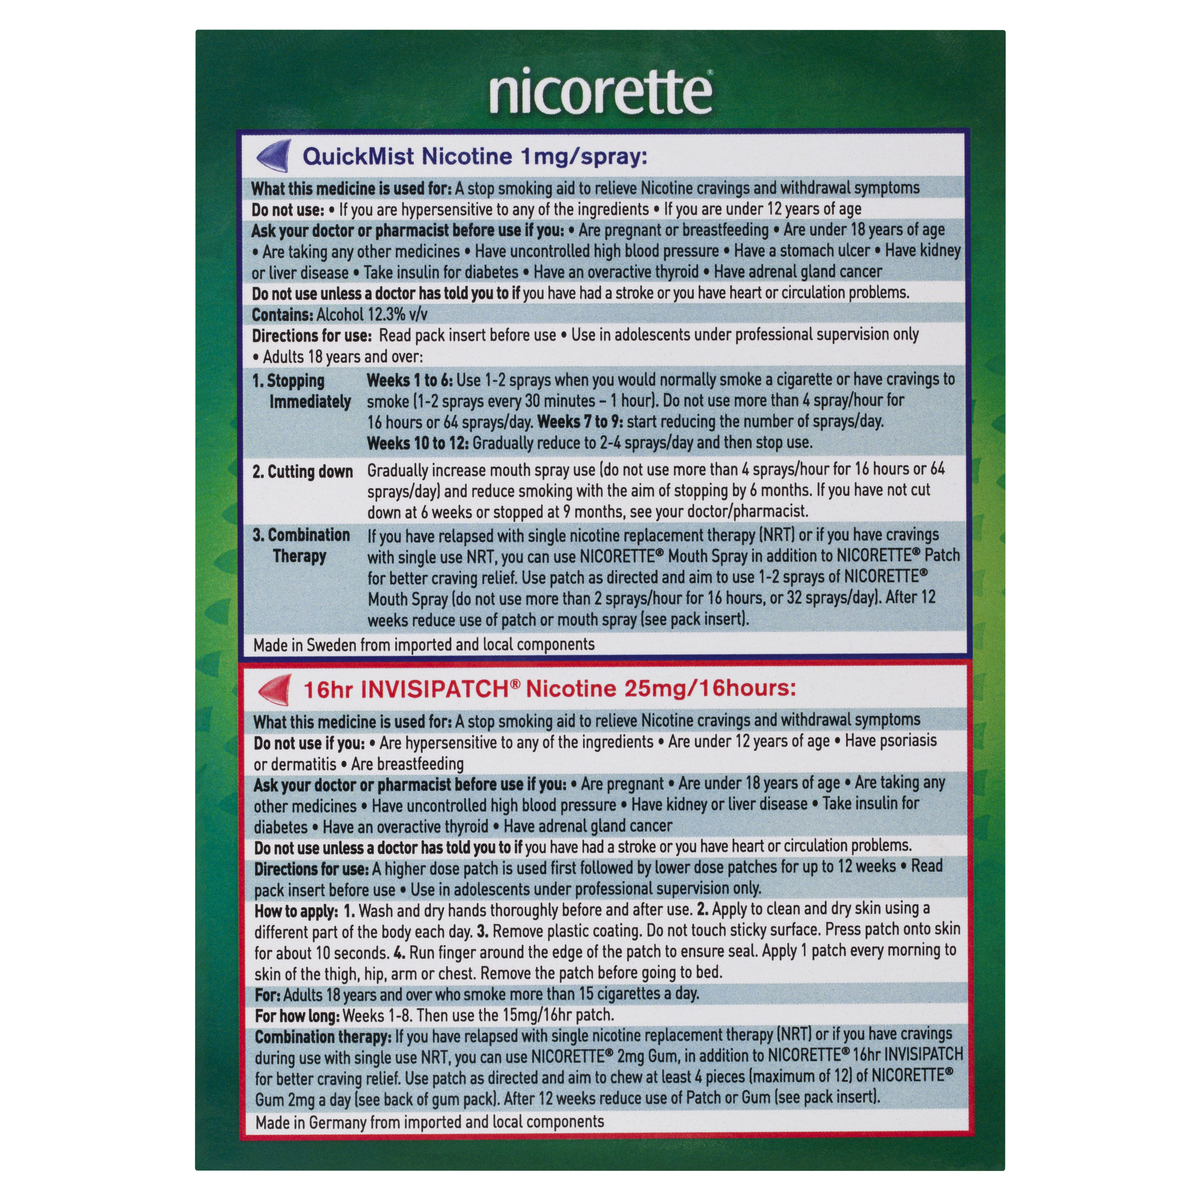 Nicorette Quit Smoking Nicotine Combination Value Kit Quick Mist And Invisipatch